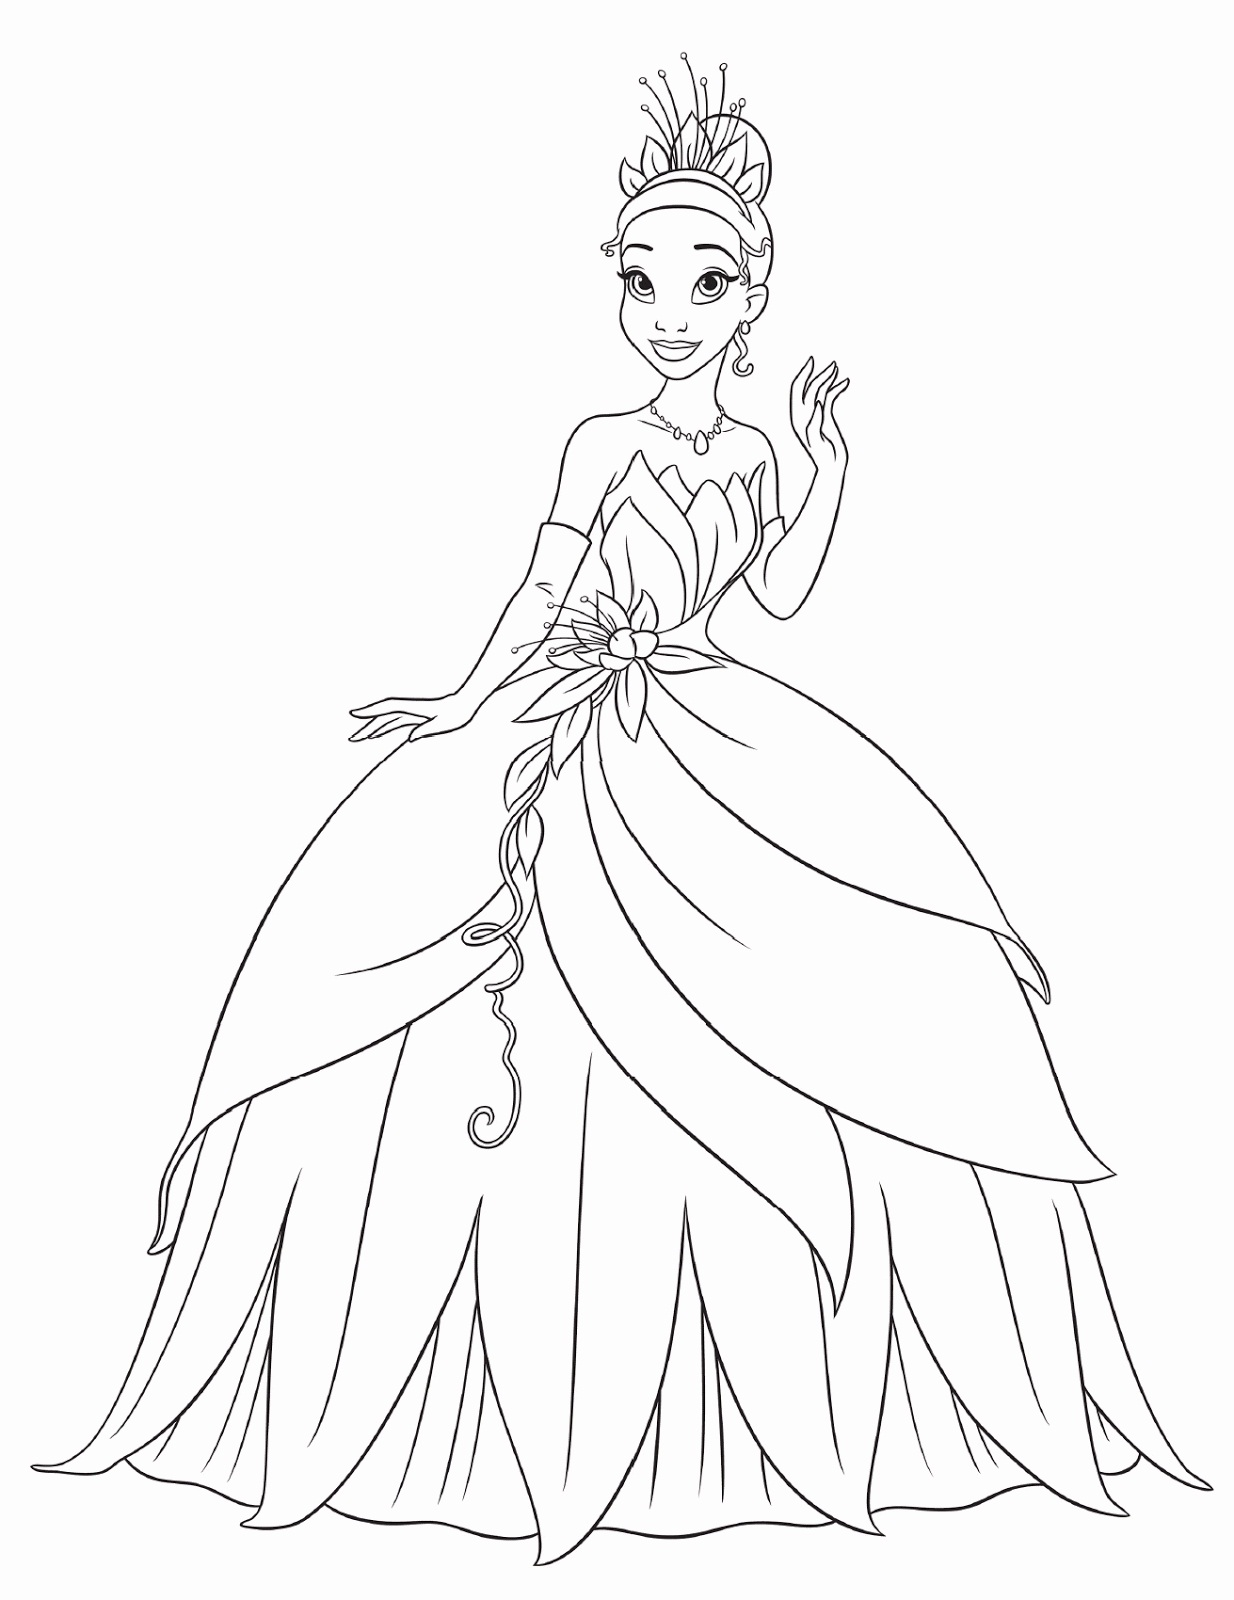 Free Printable Princess Tiana Coloring Pages For Kids Printable Pictures Of Princesses Printable